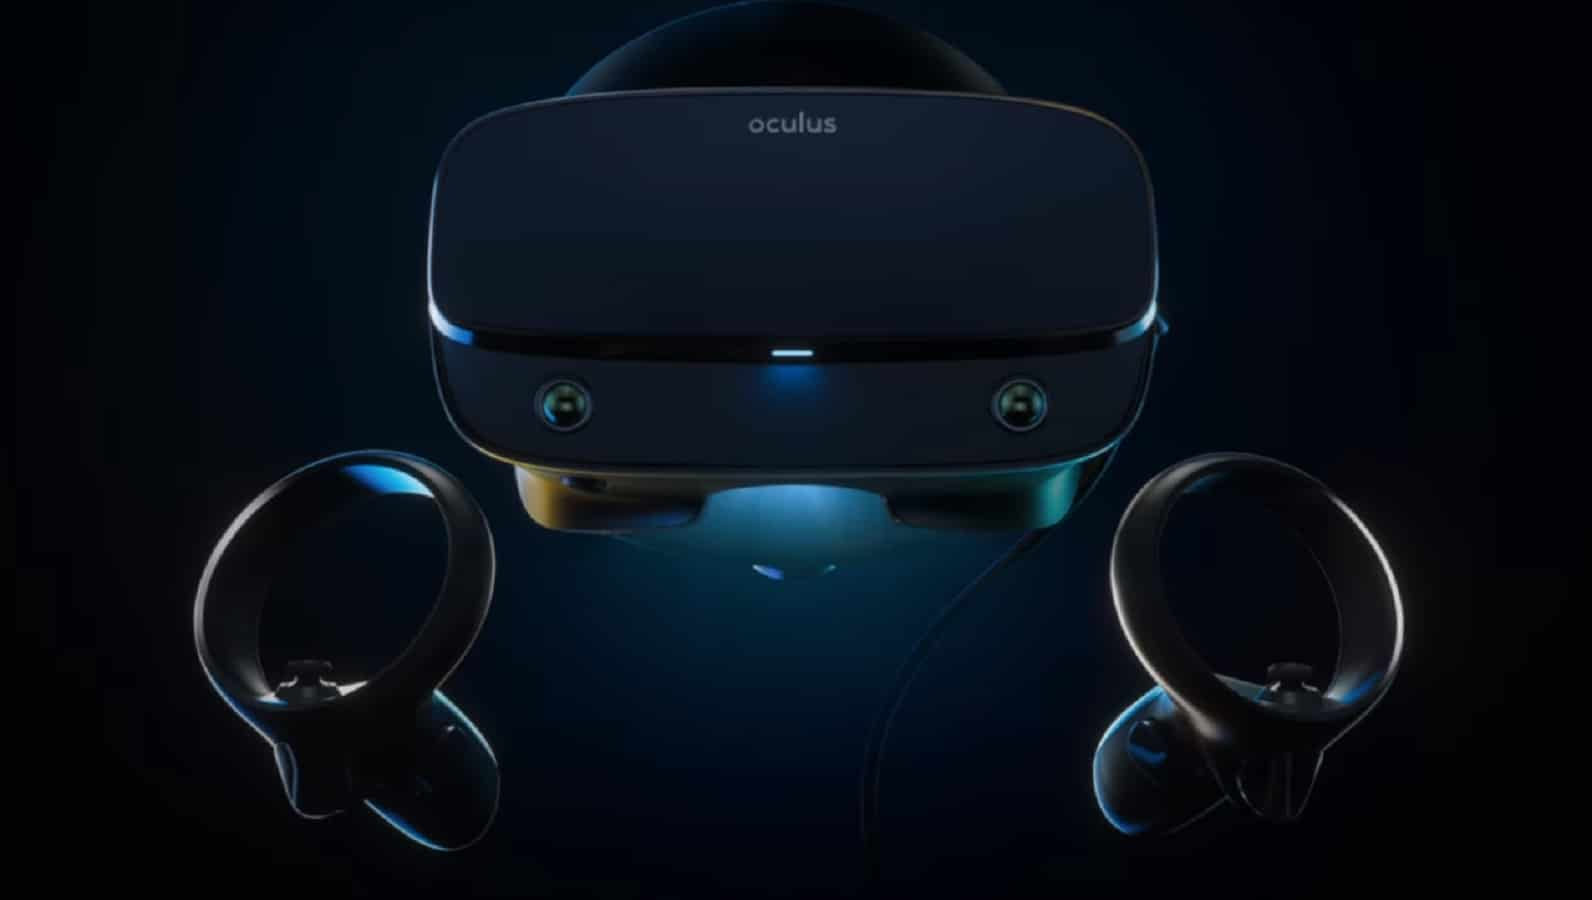 Image result for oculus rift s